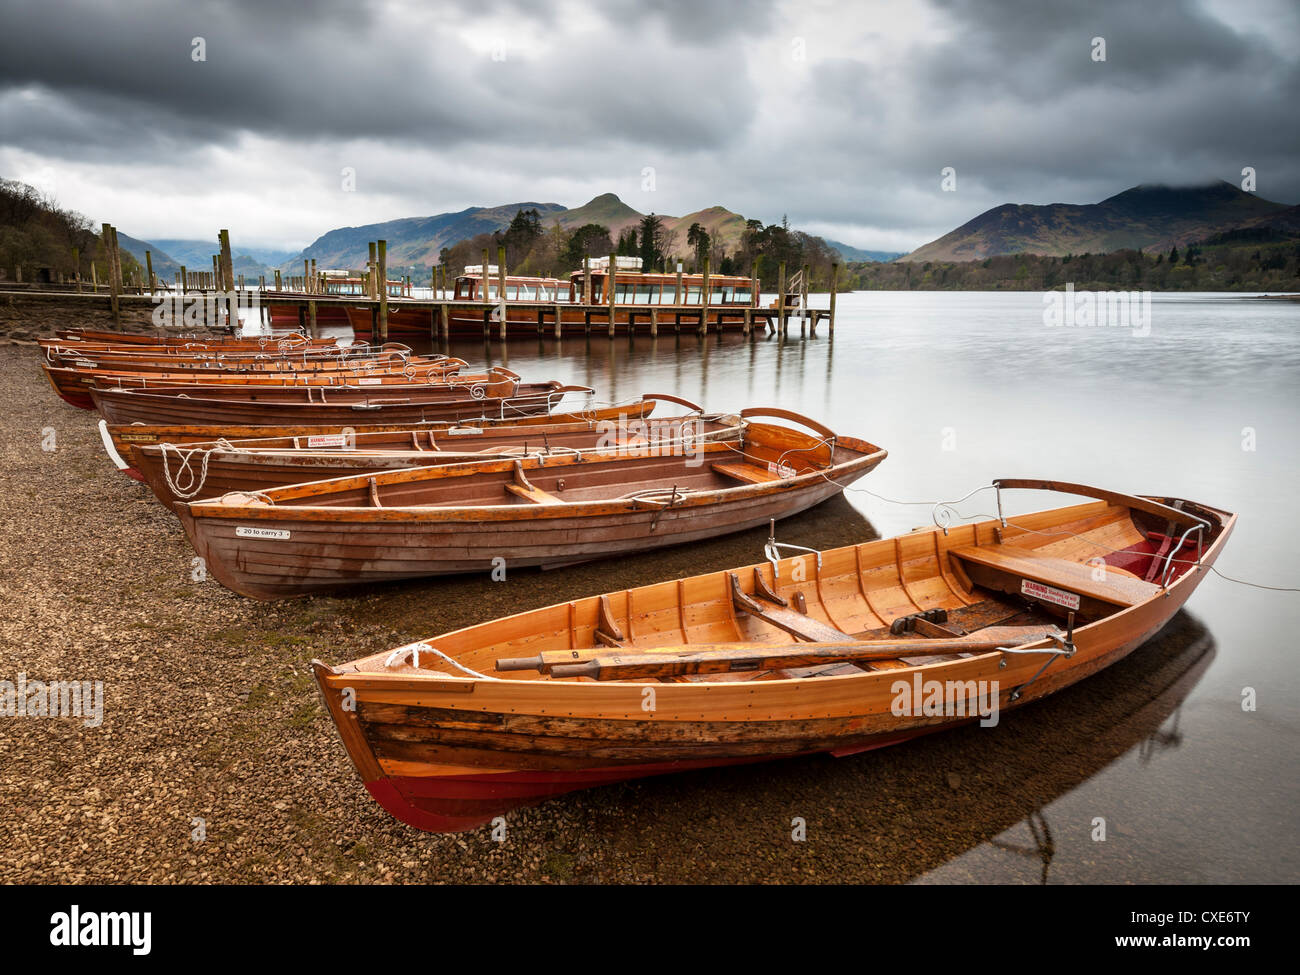 Keswick launch Boote, Derwent Water, Nationalpark Lake District, Cumbria, England Stockbild